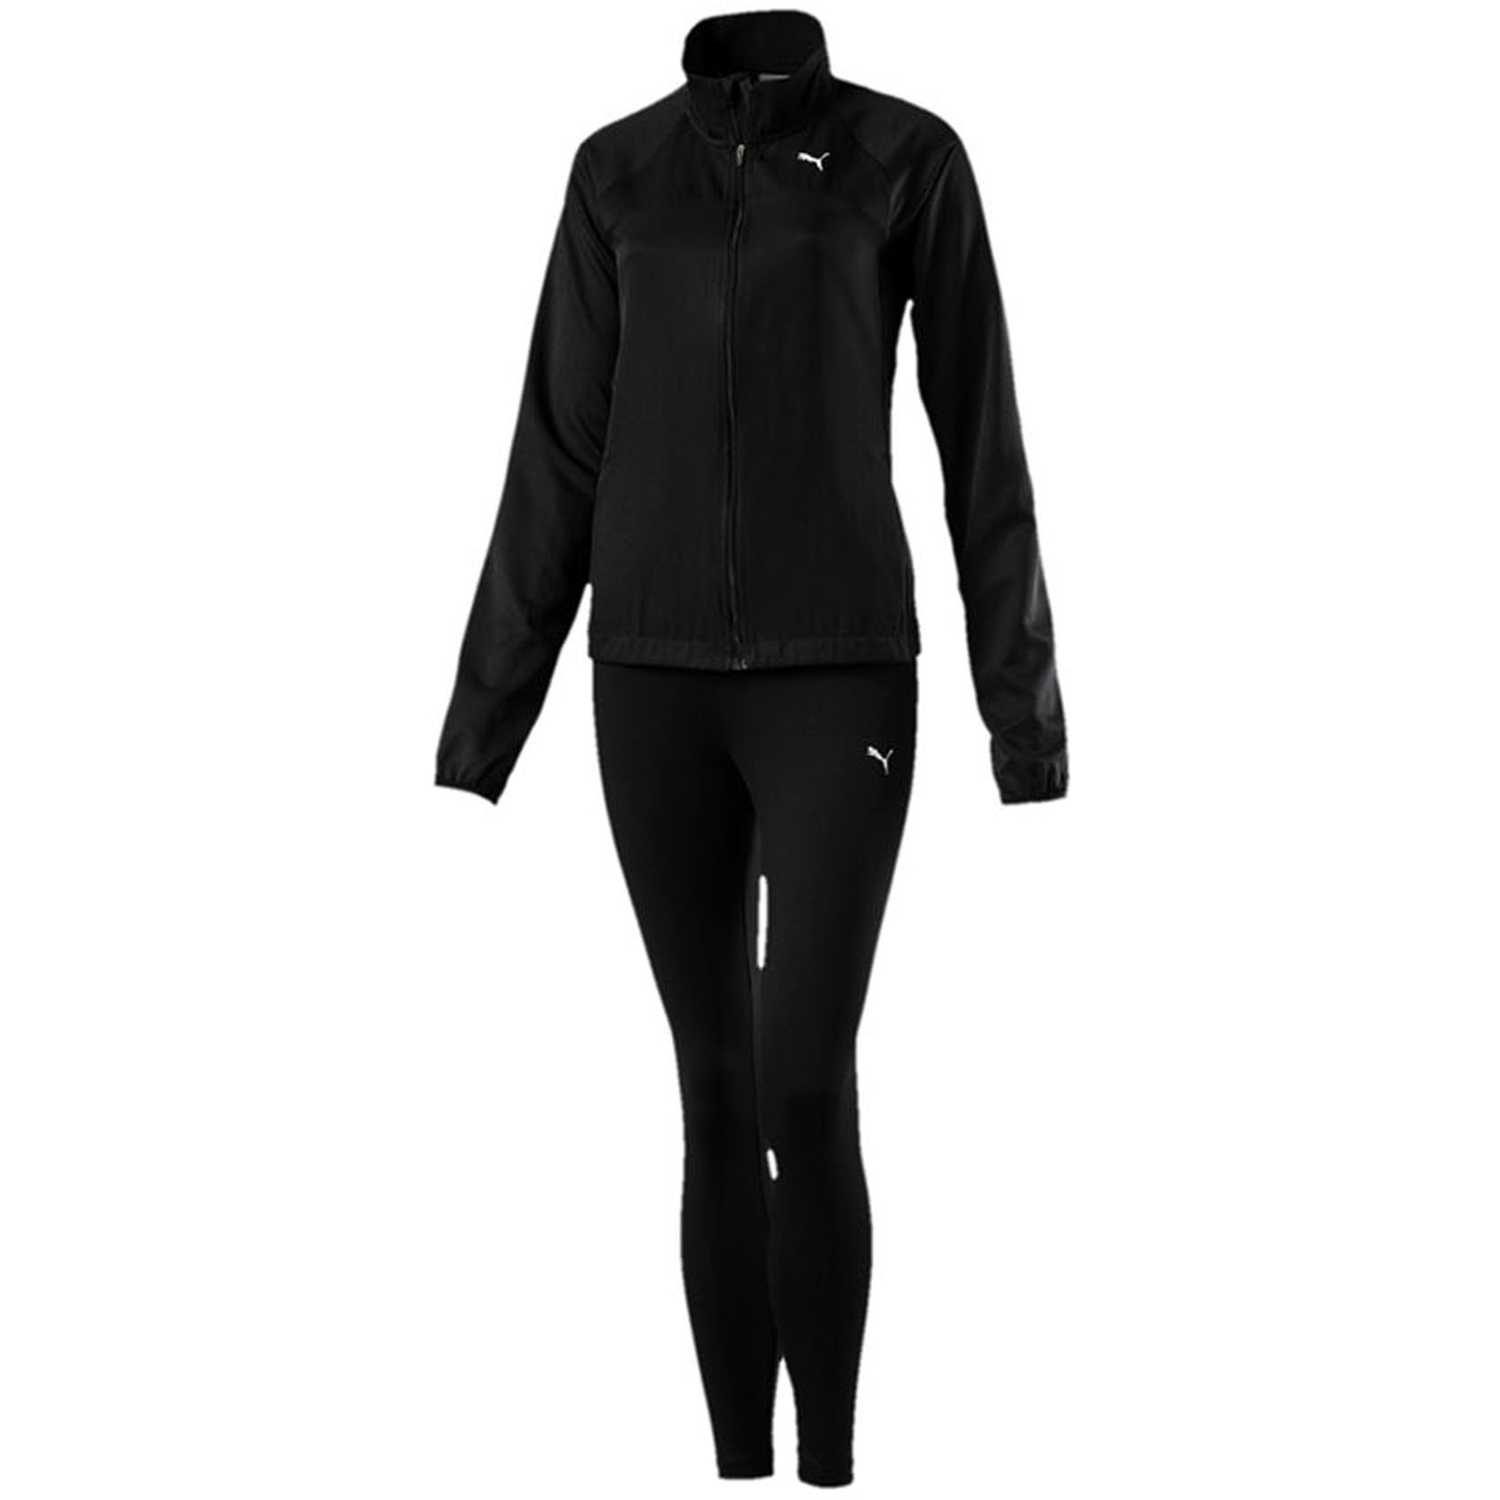 Puma active yogini woven suit Negro Sets Deportivos Tops y Bottoms